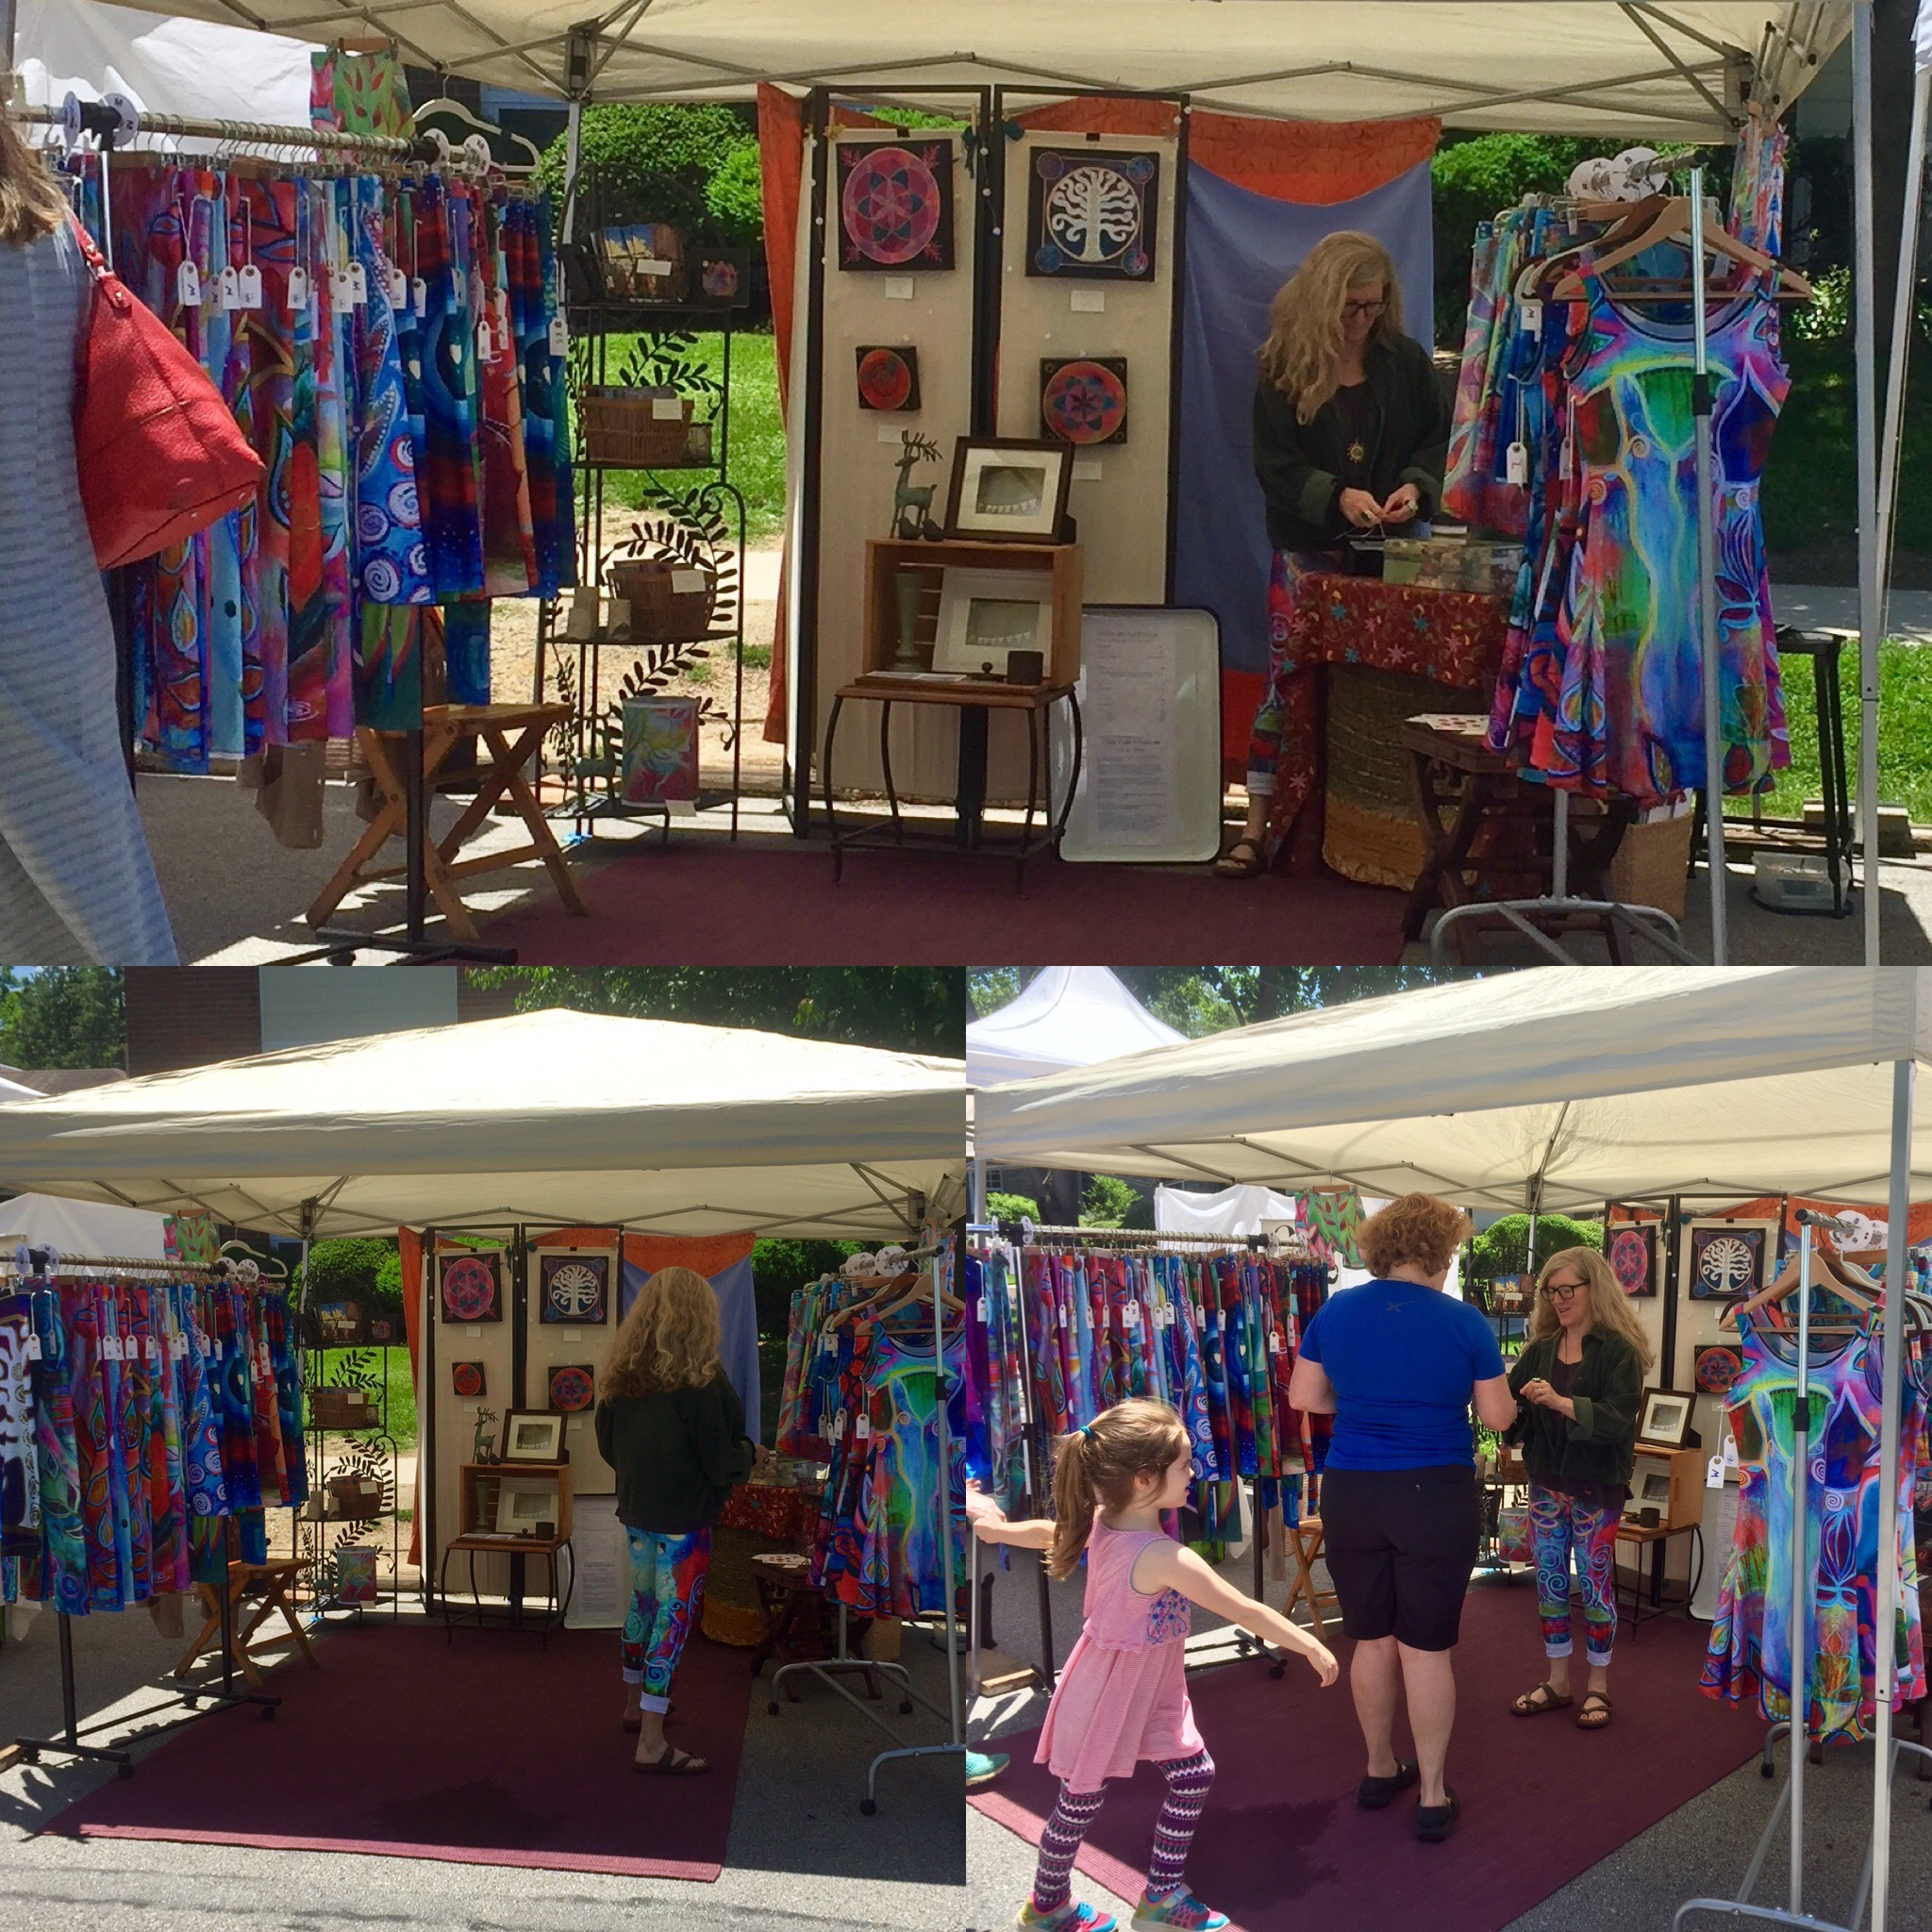 Clair Wear Booth at the Maker's Market, Swarthmore, PA,  June 3, 2017